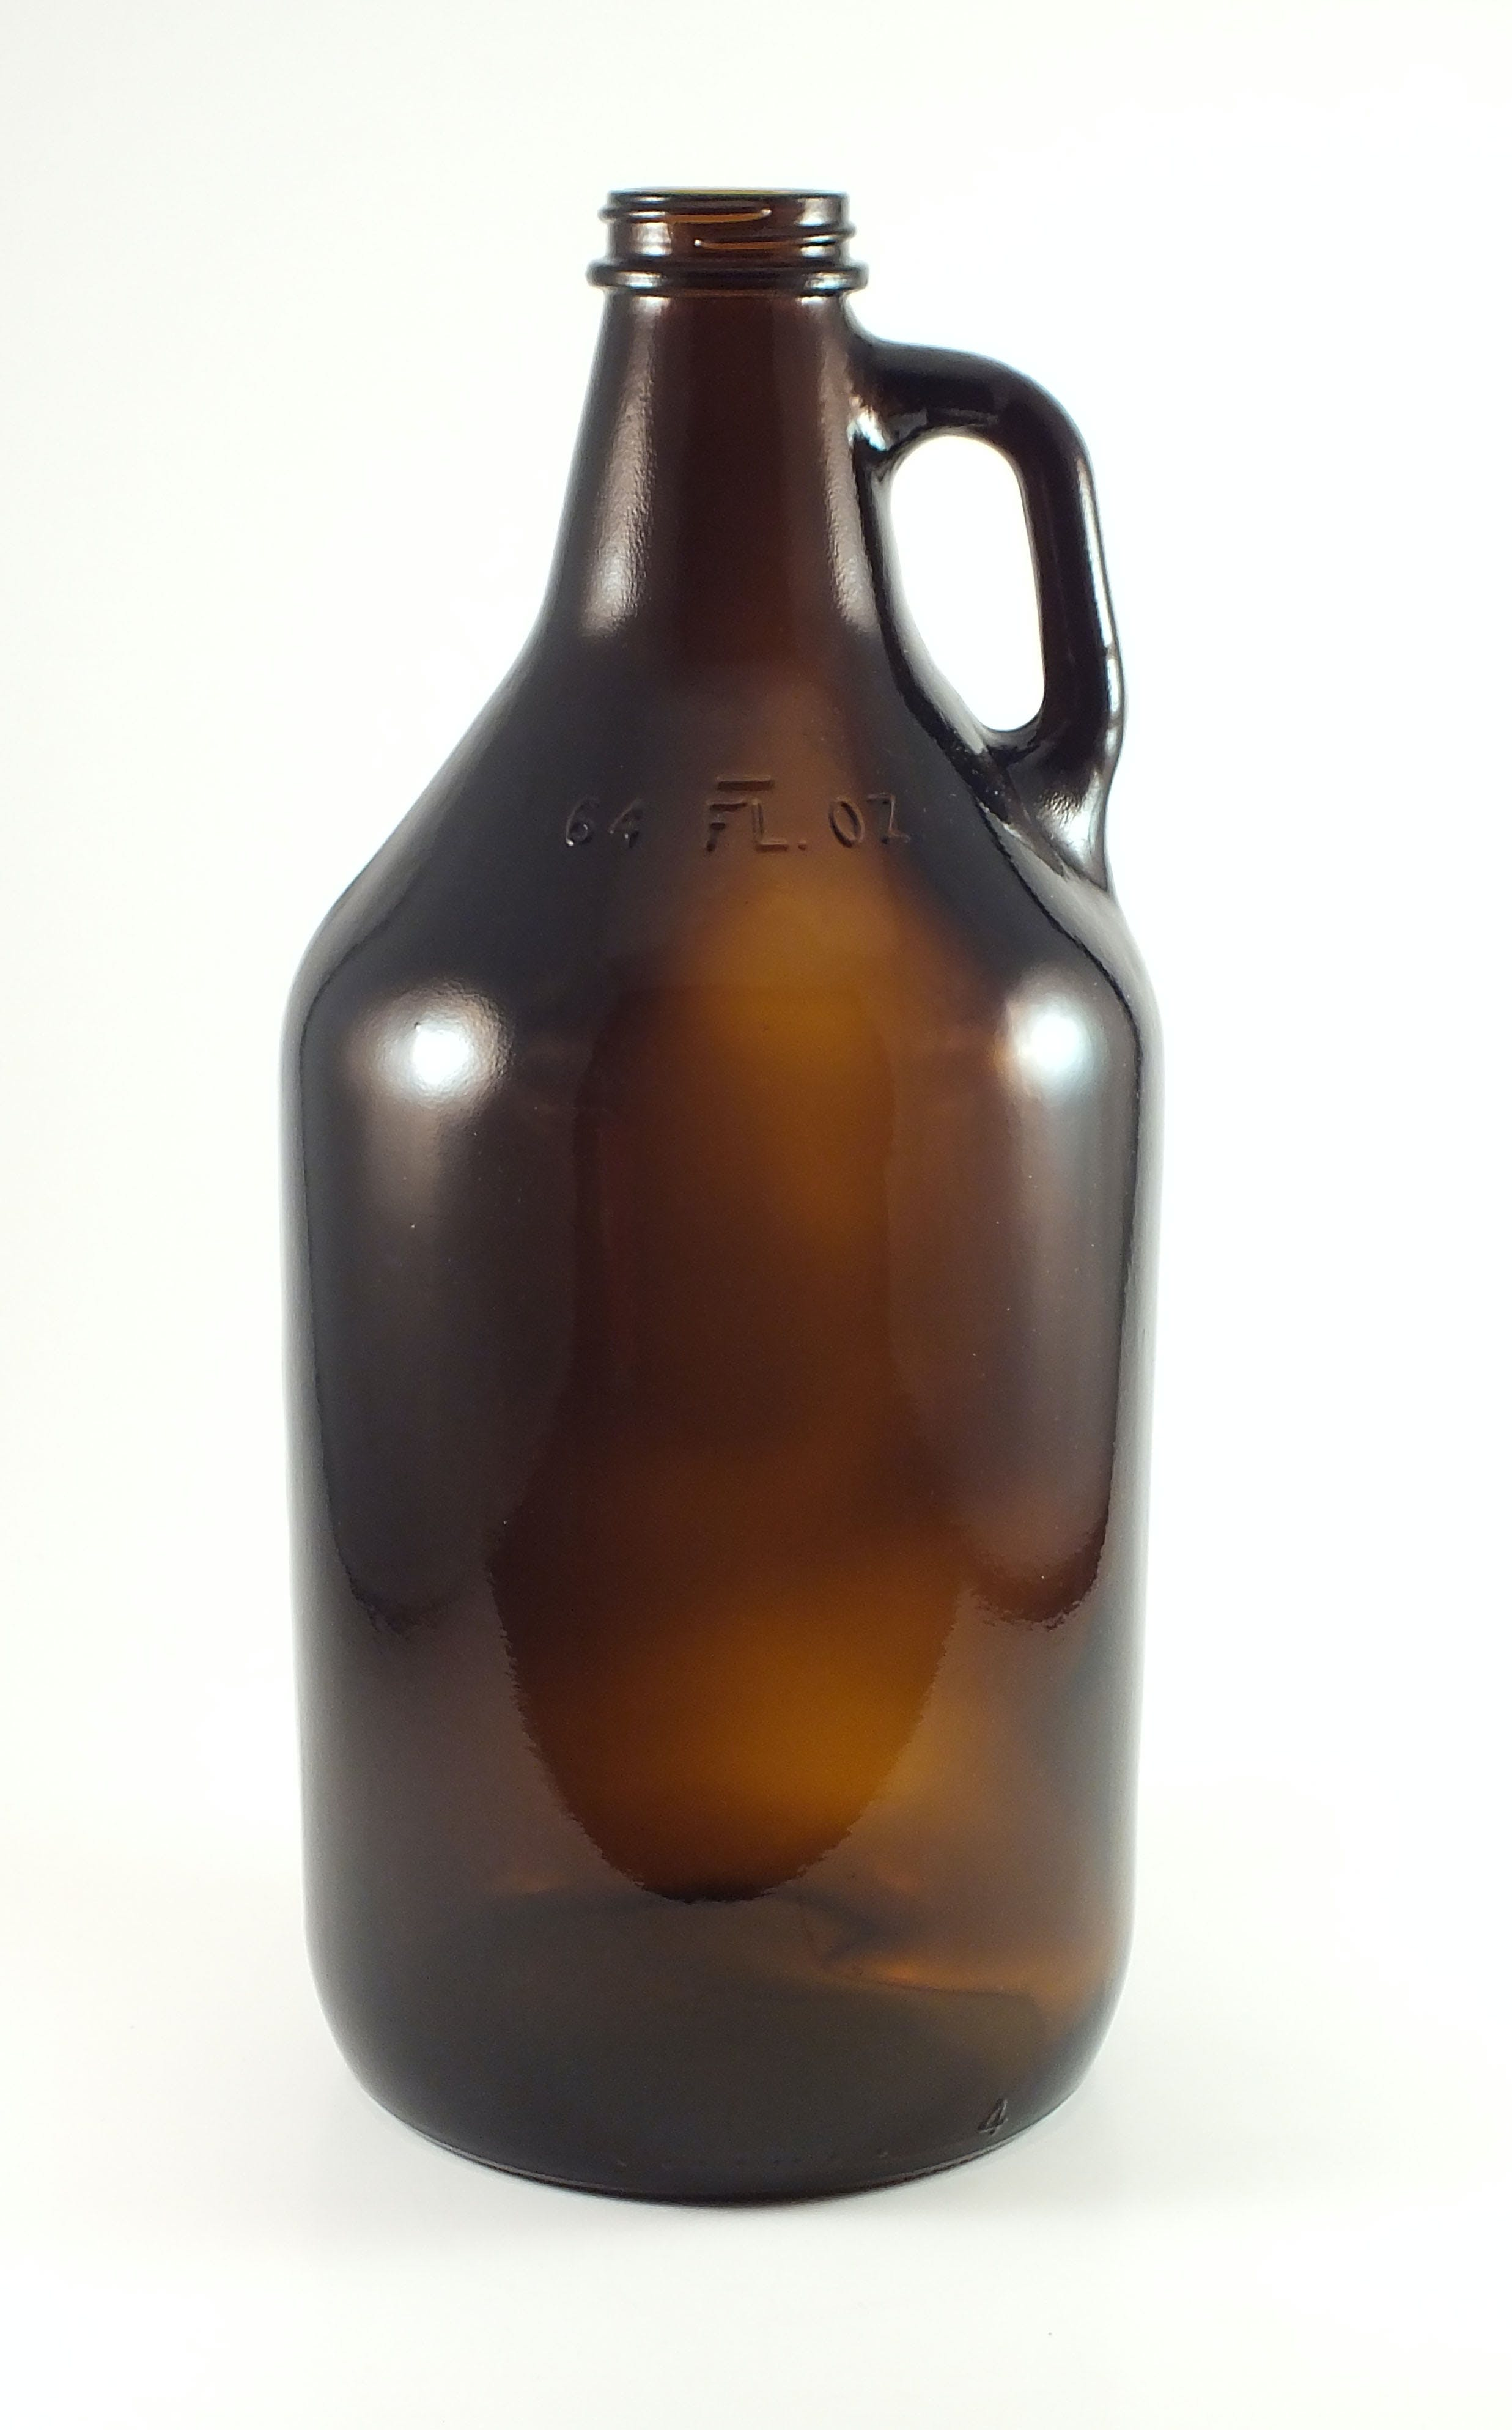 64oz standard growler Growler sold by Kaufman Container Company